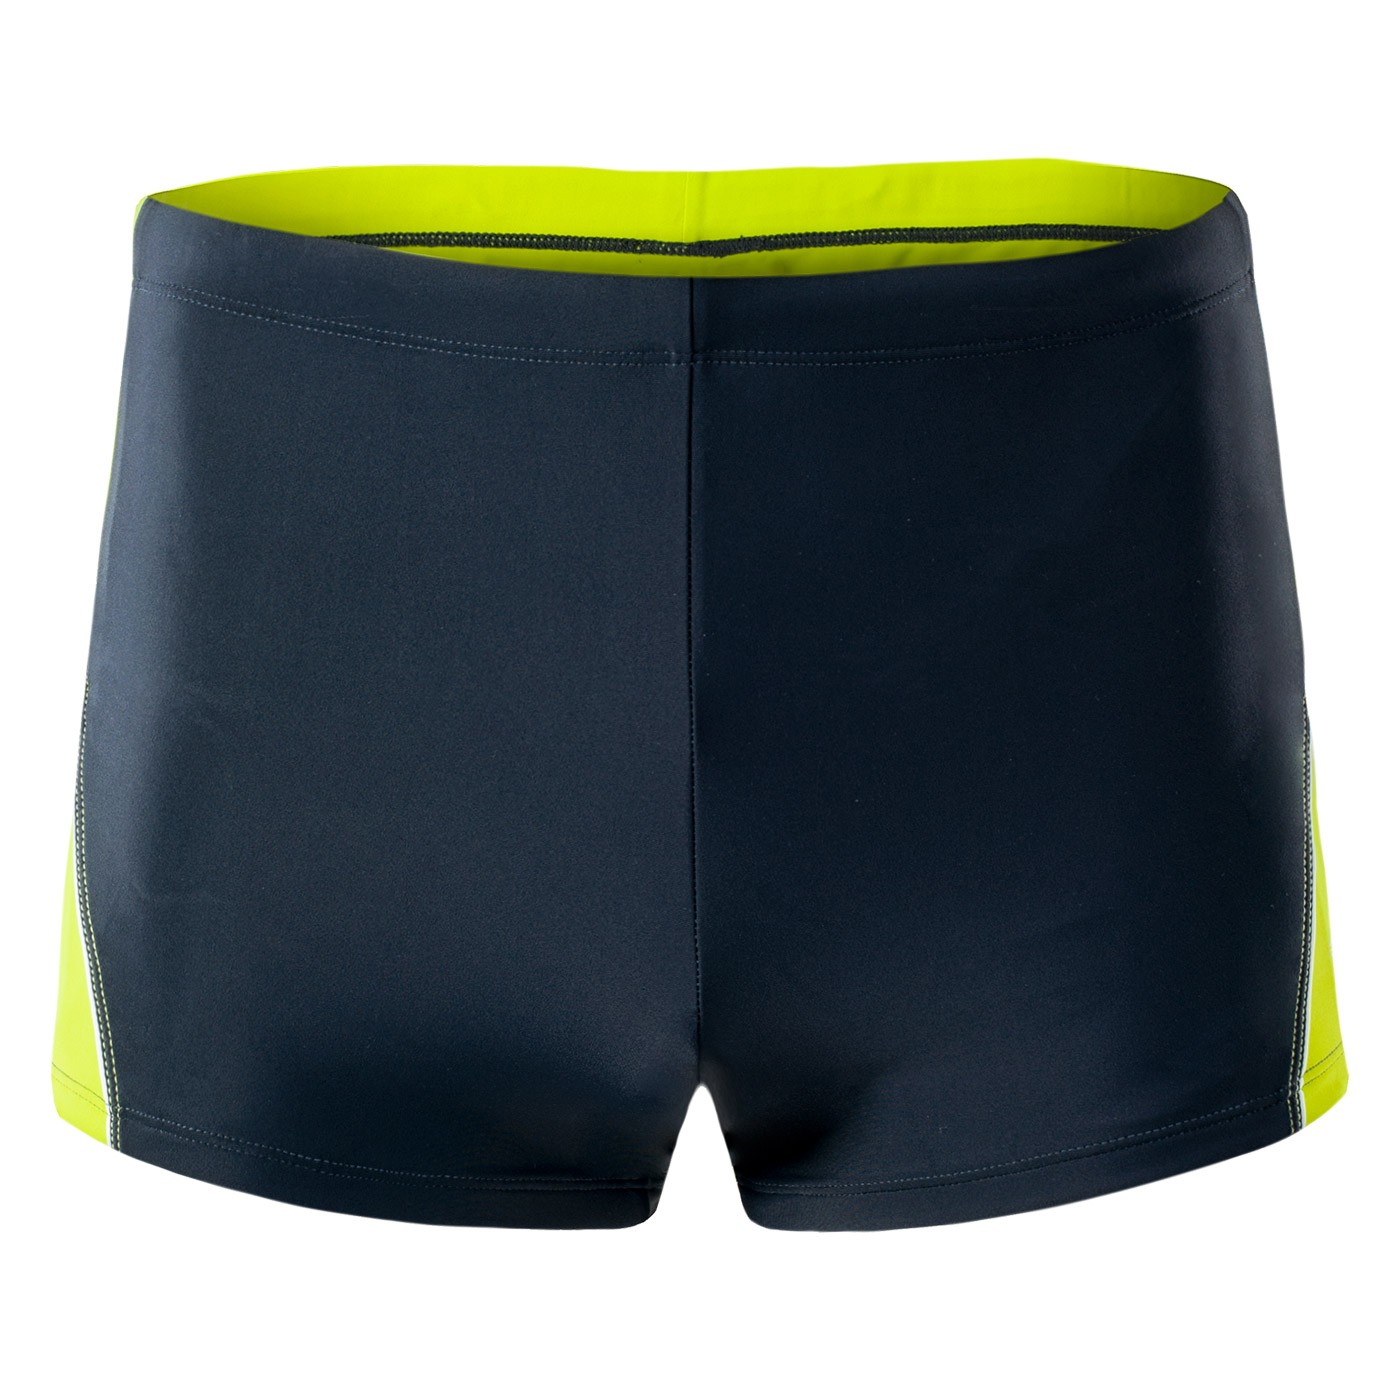 Swimming boxers Helder